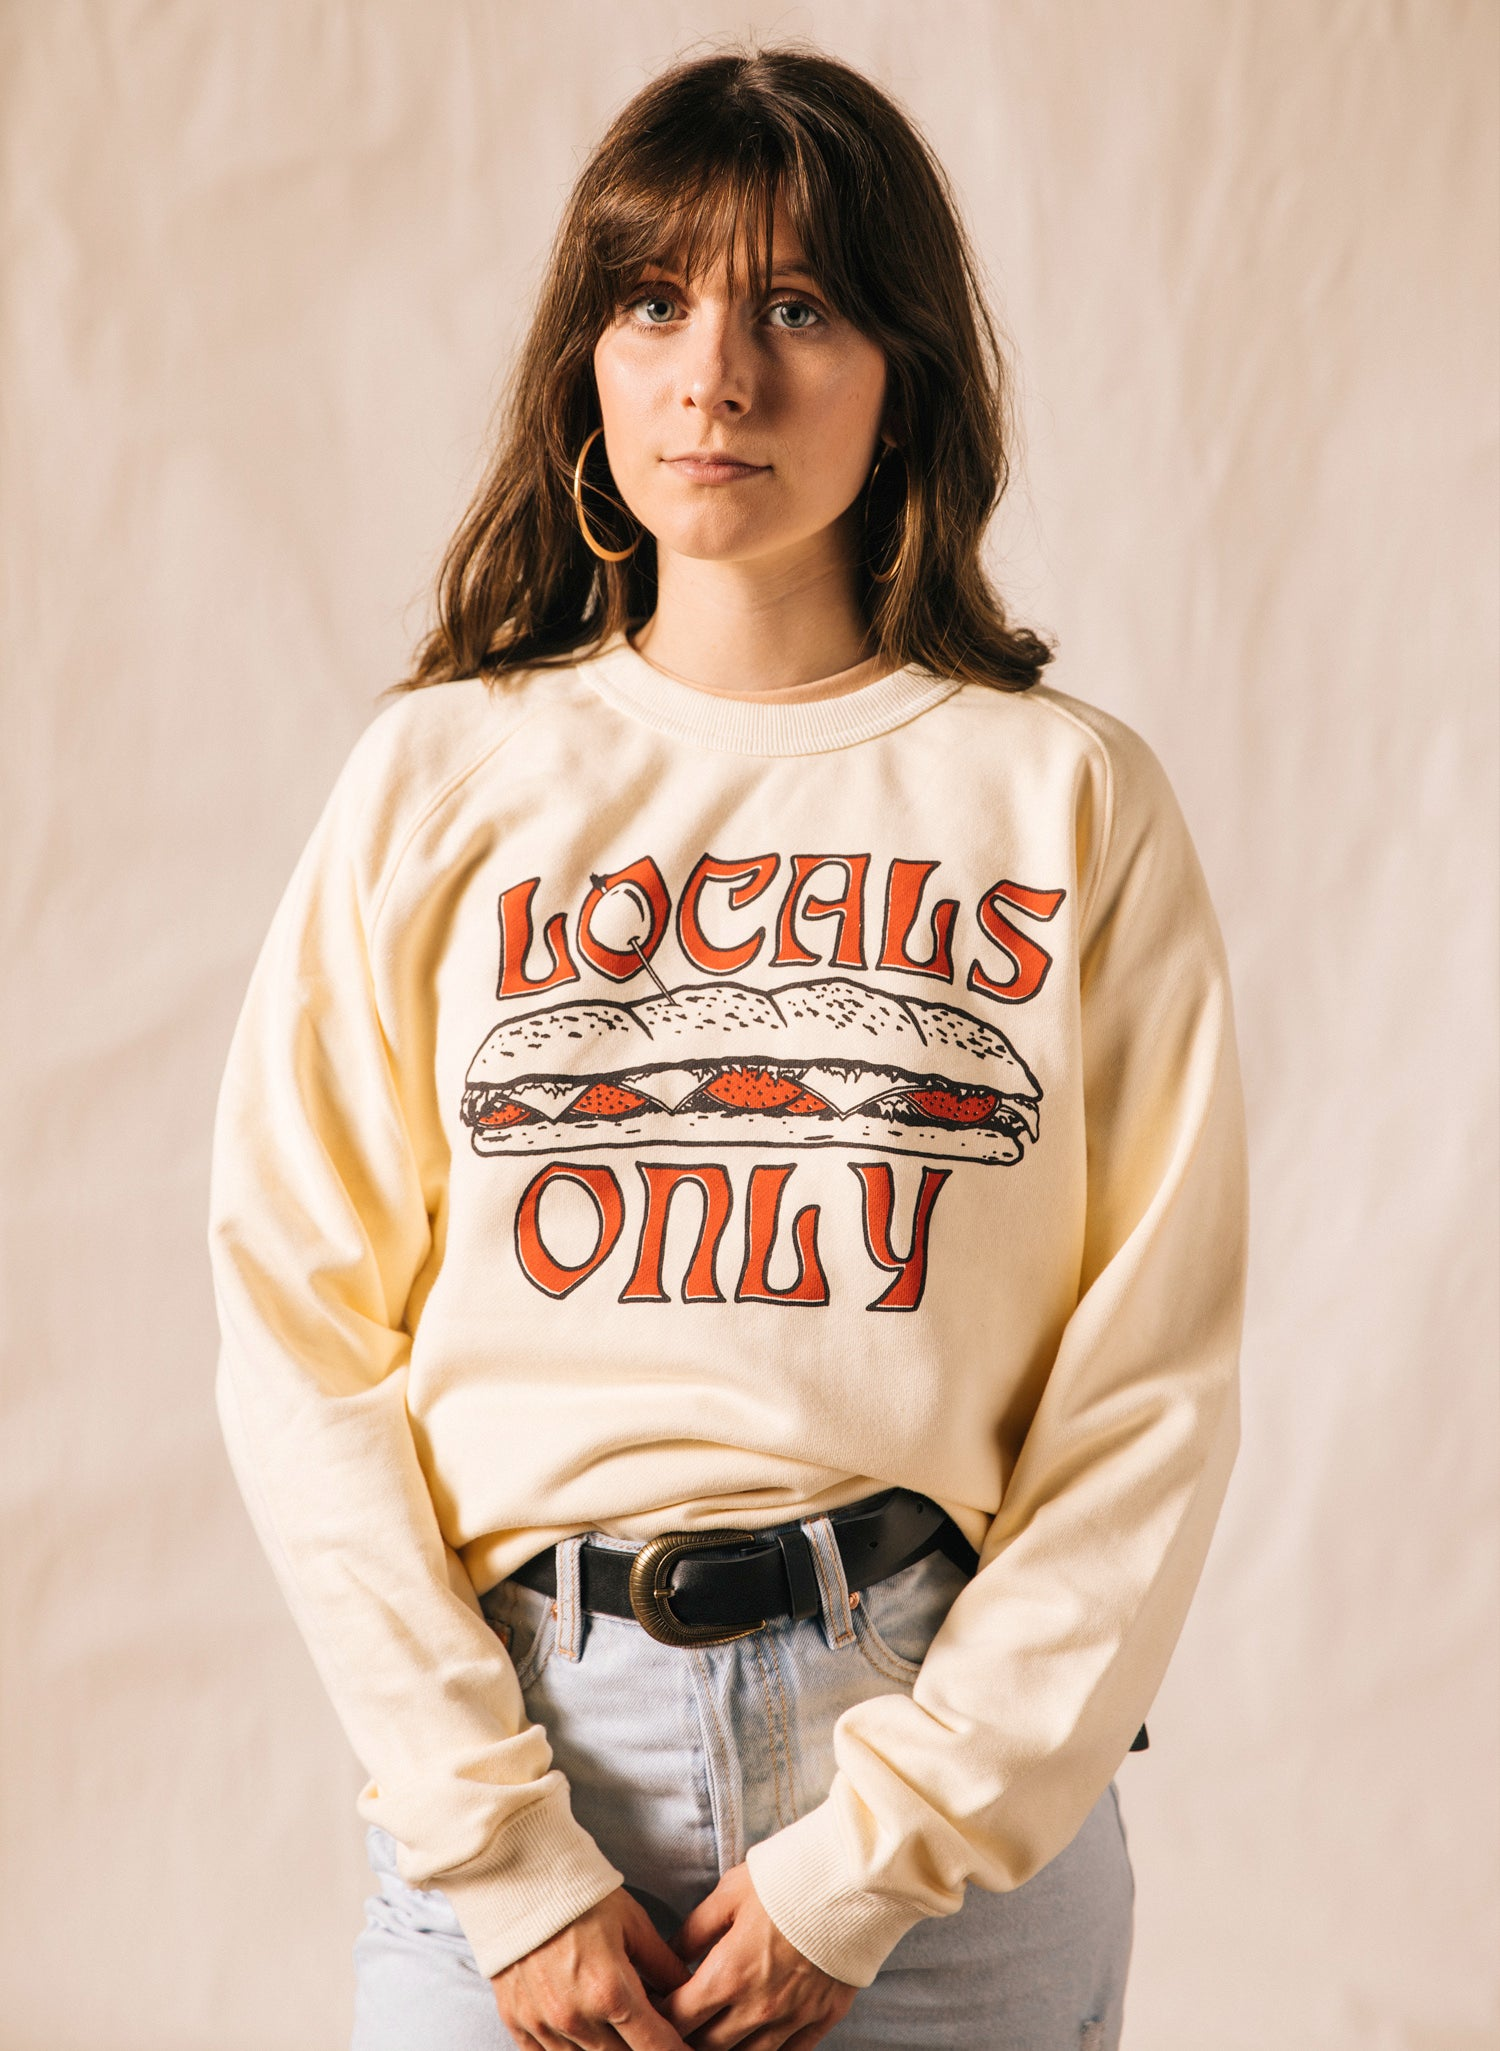 Locals Only Hoagie Sub Grinder Sandwich Hemp Food Crewneck for Foodies